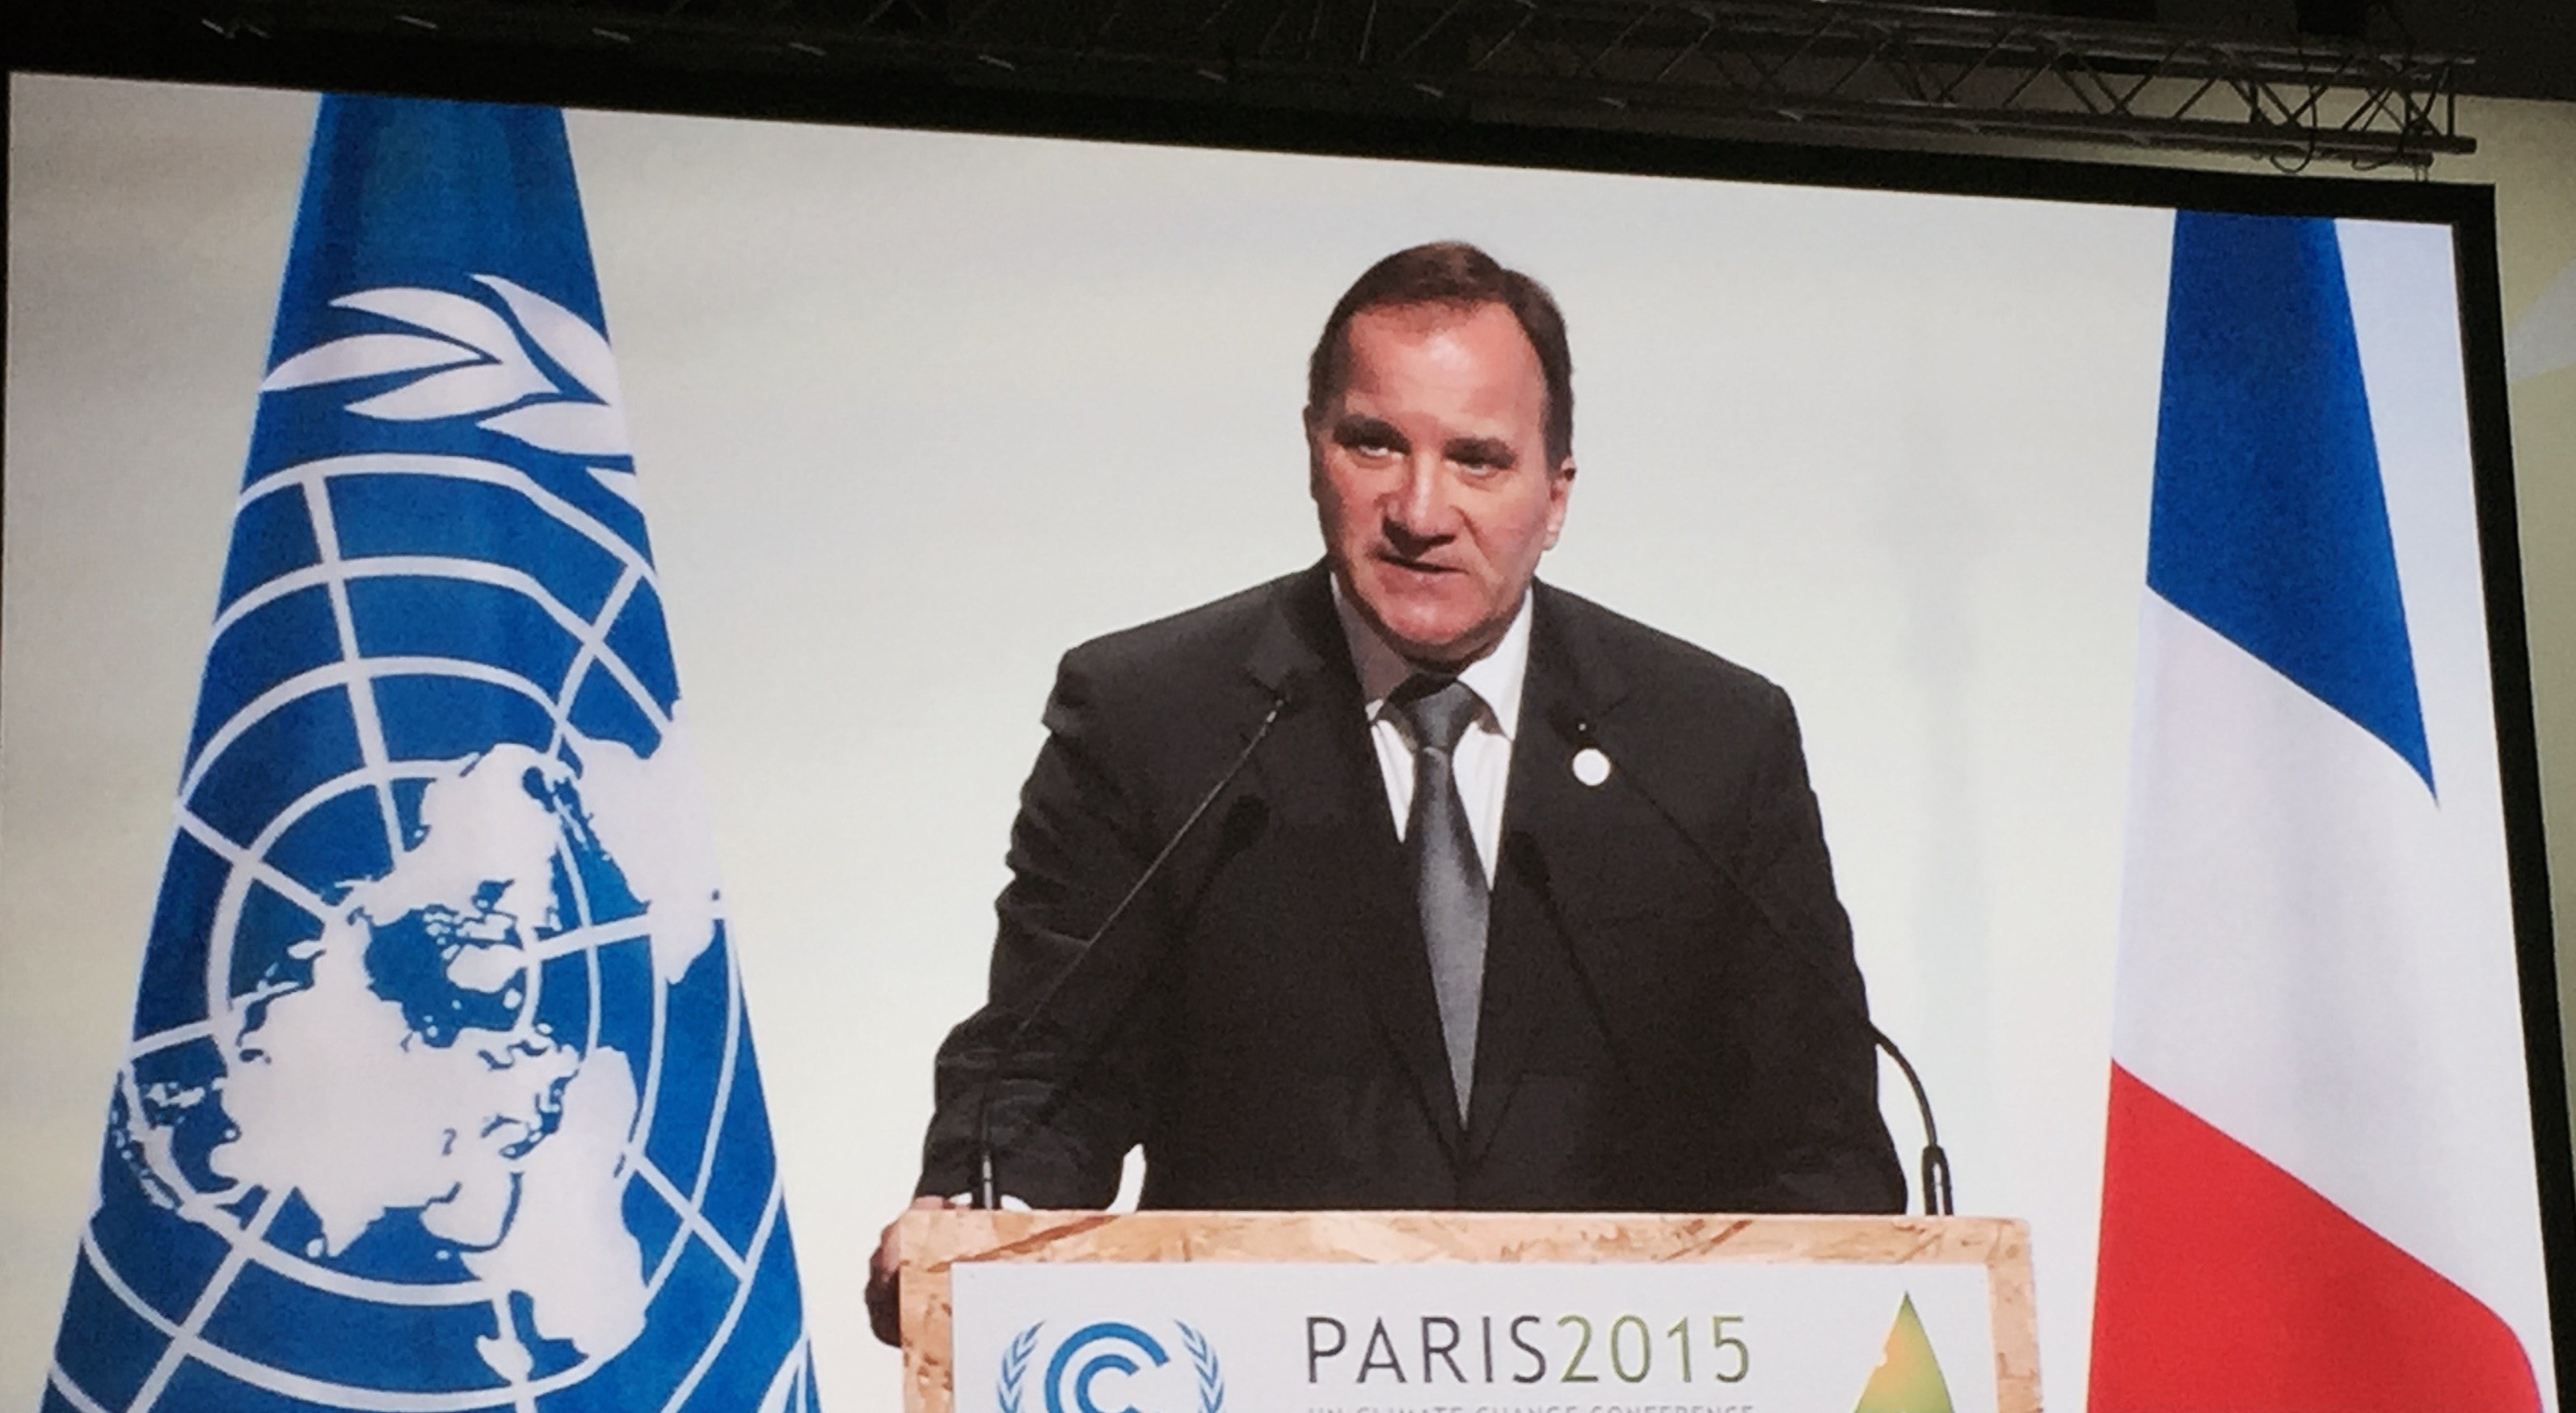 Swedish Prime Minister Stefan Lofven at COP21